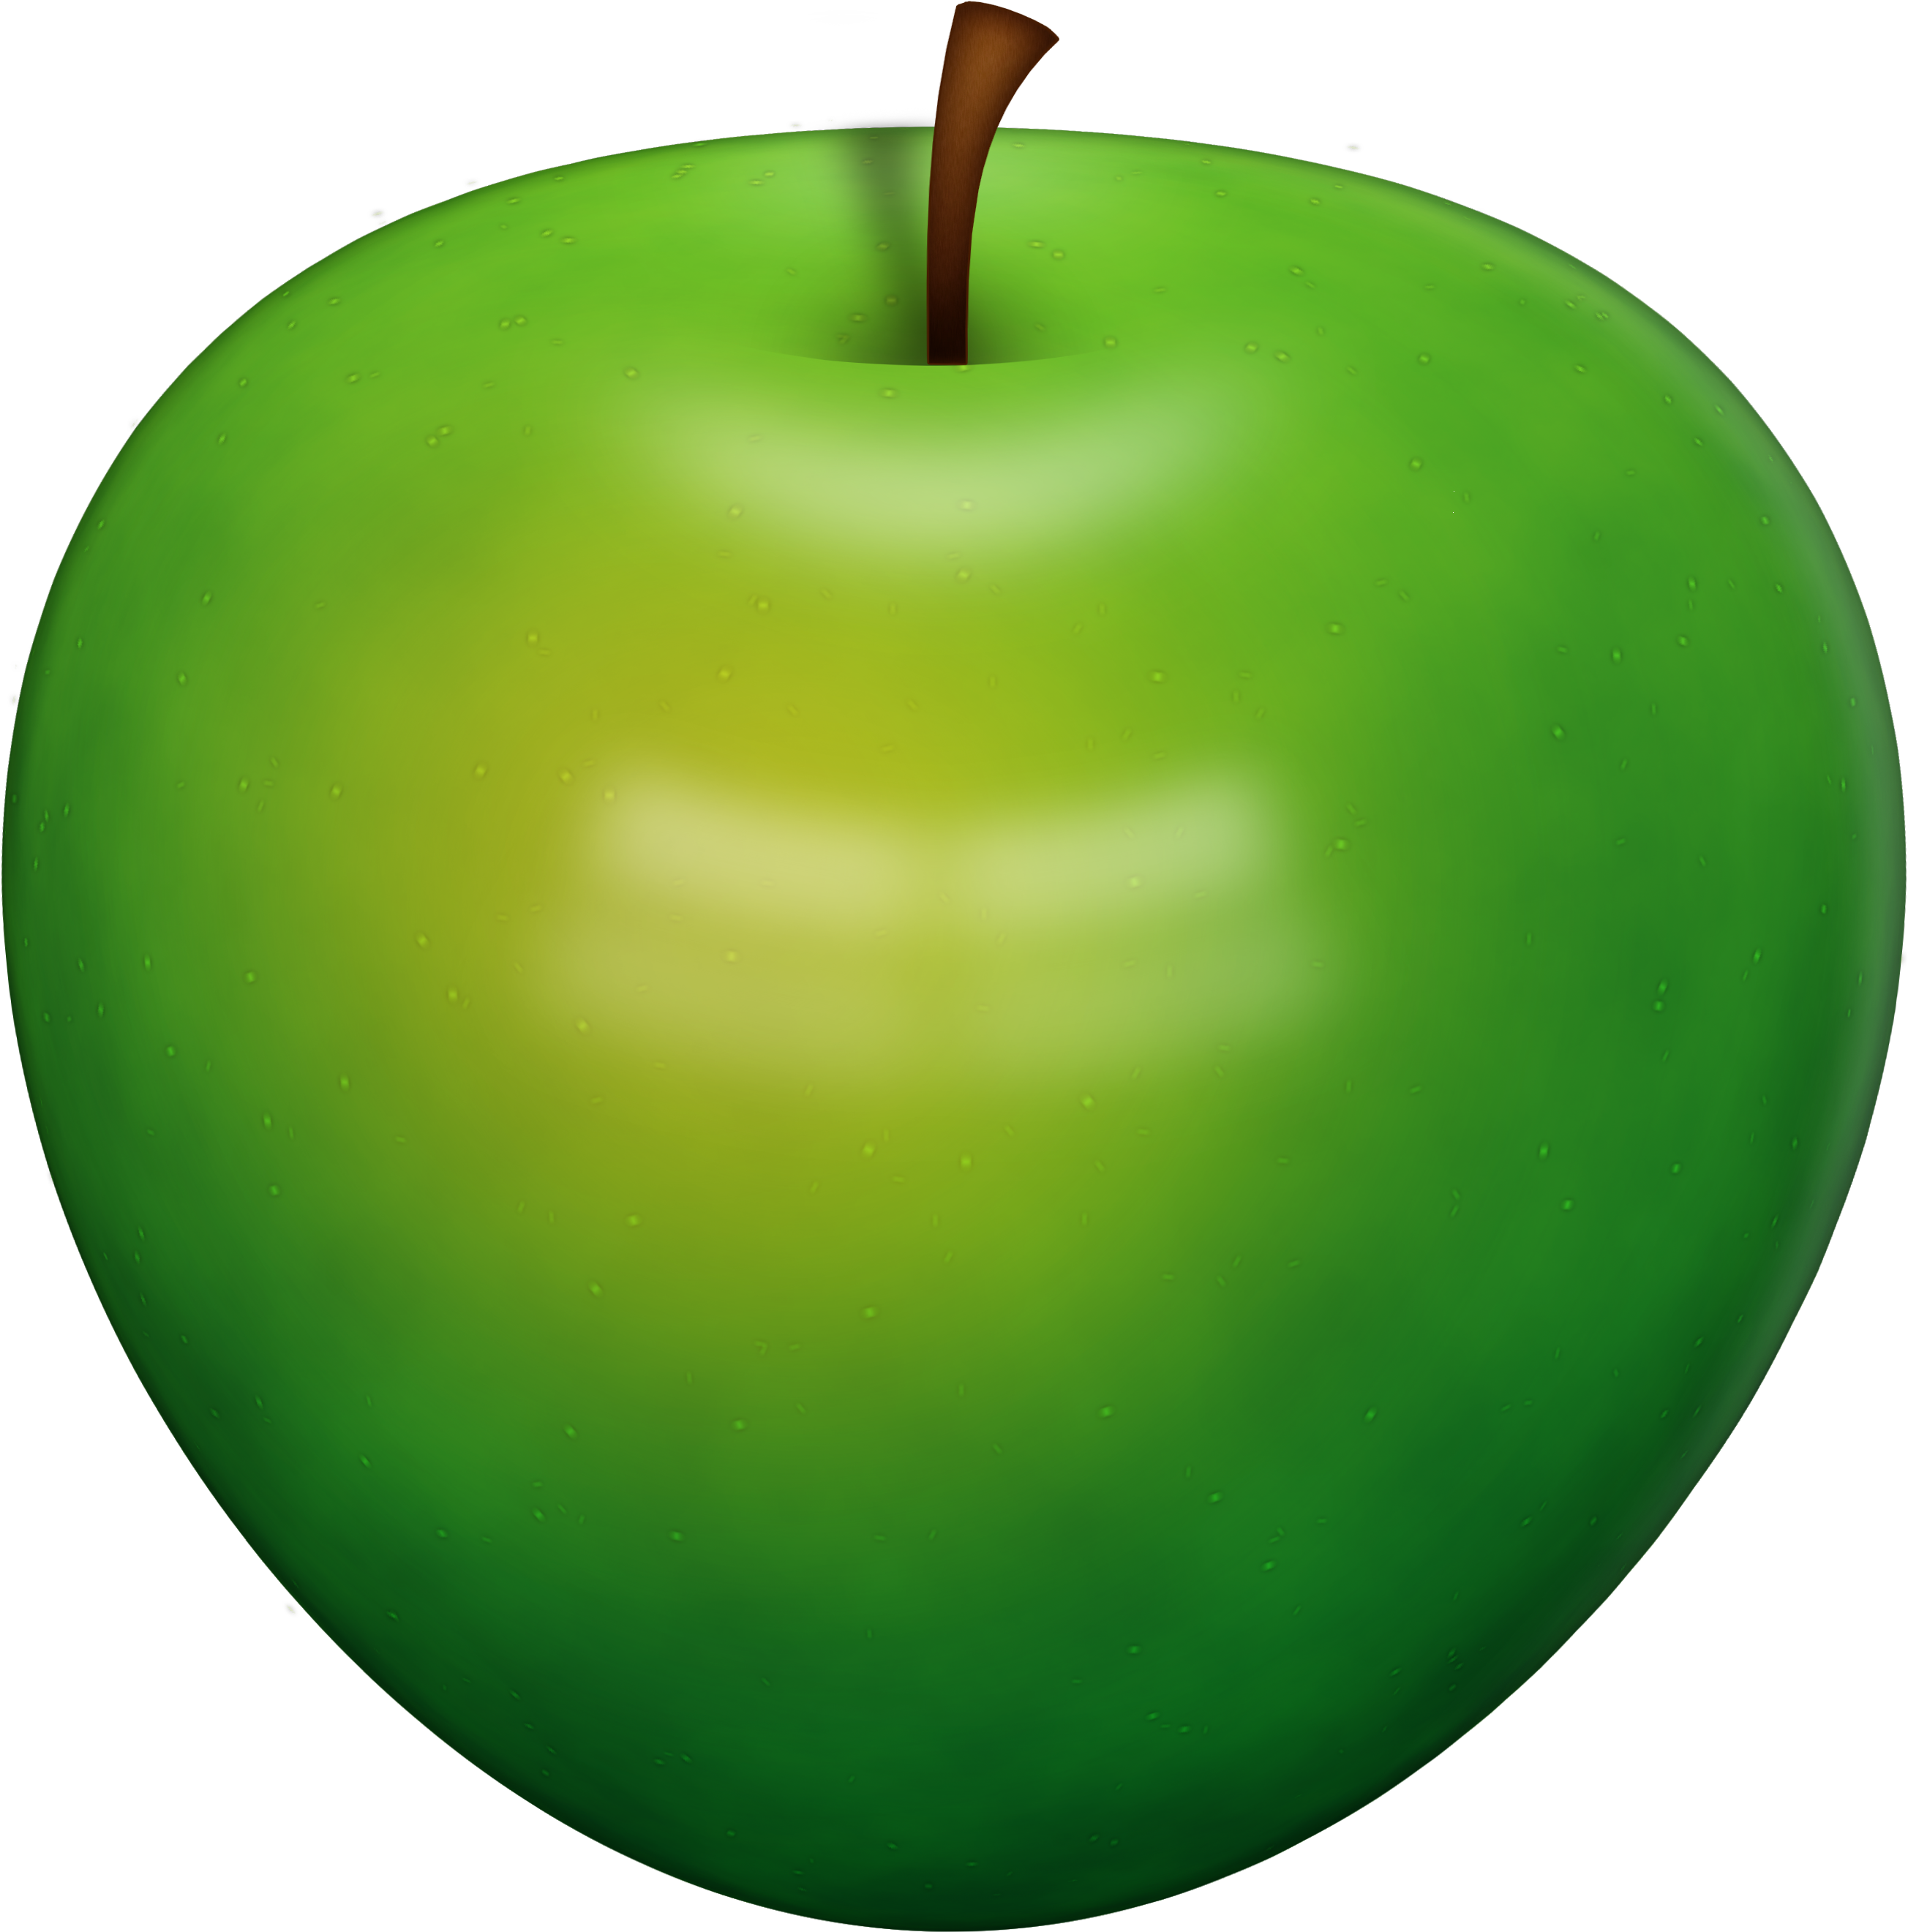 Clipart green apple library Green Apple's PNG Image - PurePNG | Free transparent CC0 PNG Image ... library